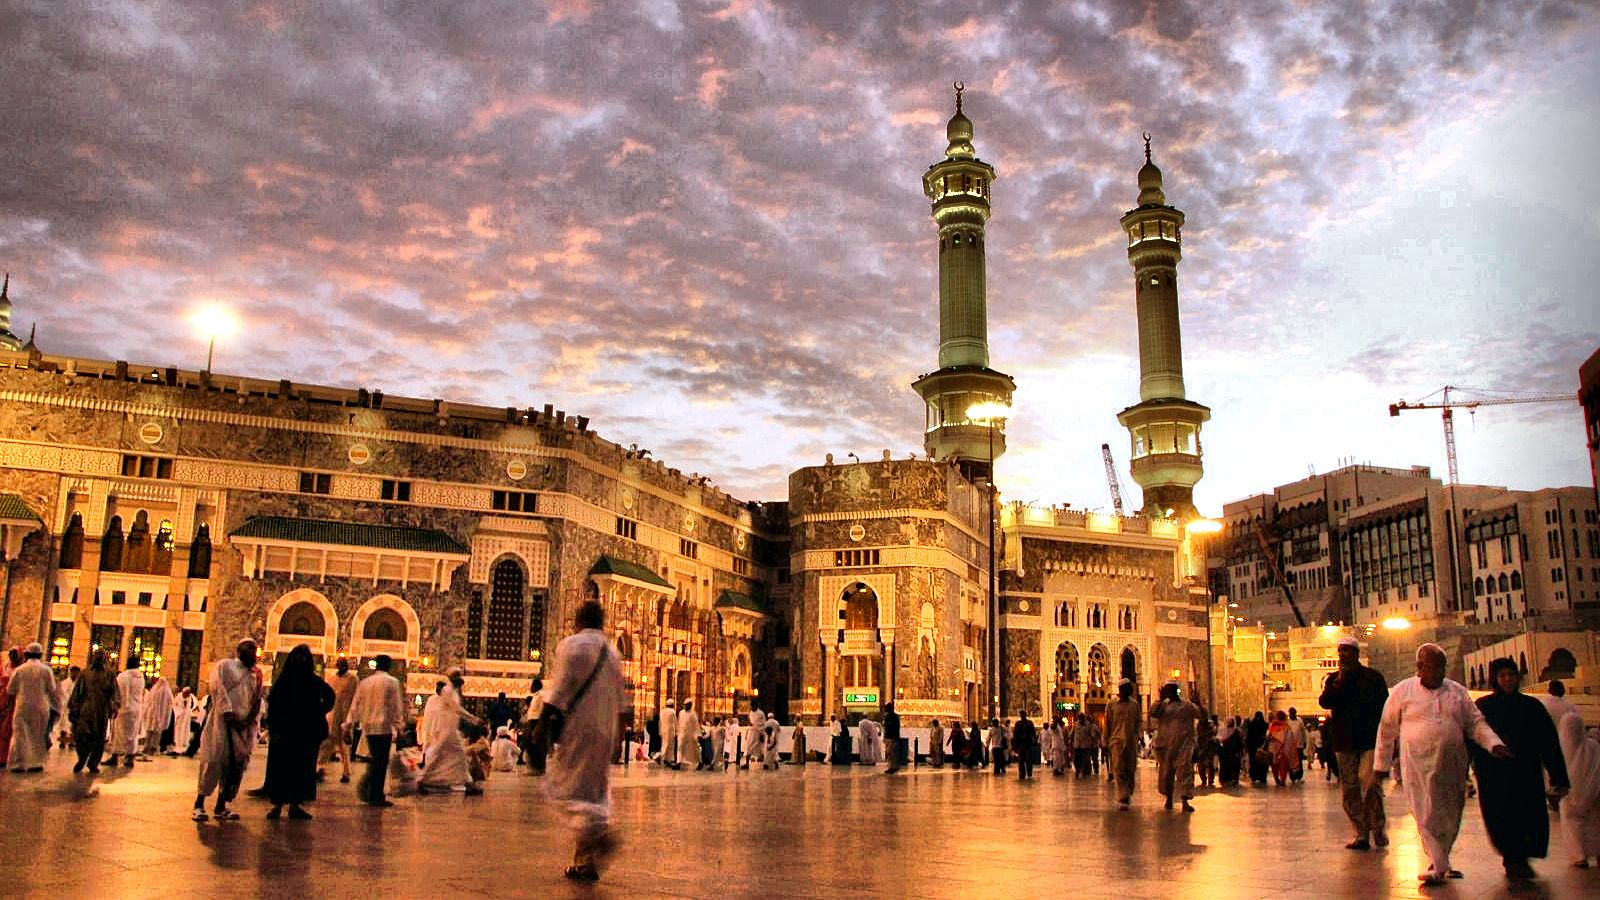 Beautiful Makkah Latest Hd Images Pictures For Desktop Wallpapers Free Download Makkah 1080p Photos For Wide Backgrounds W Wallpaper Ponsel Tempat December